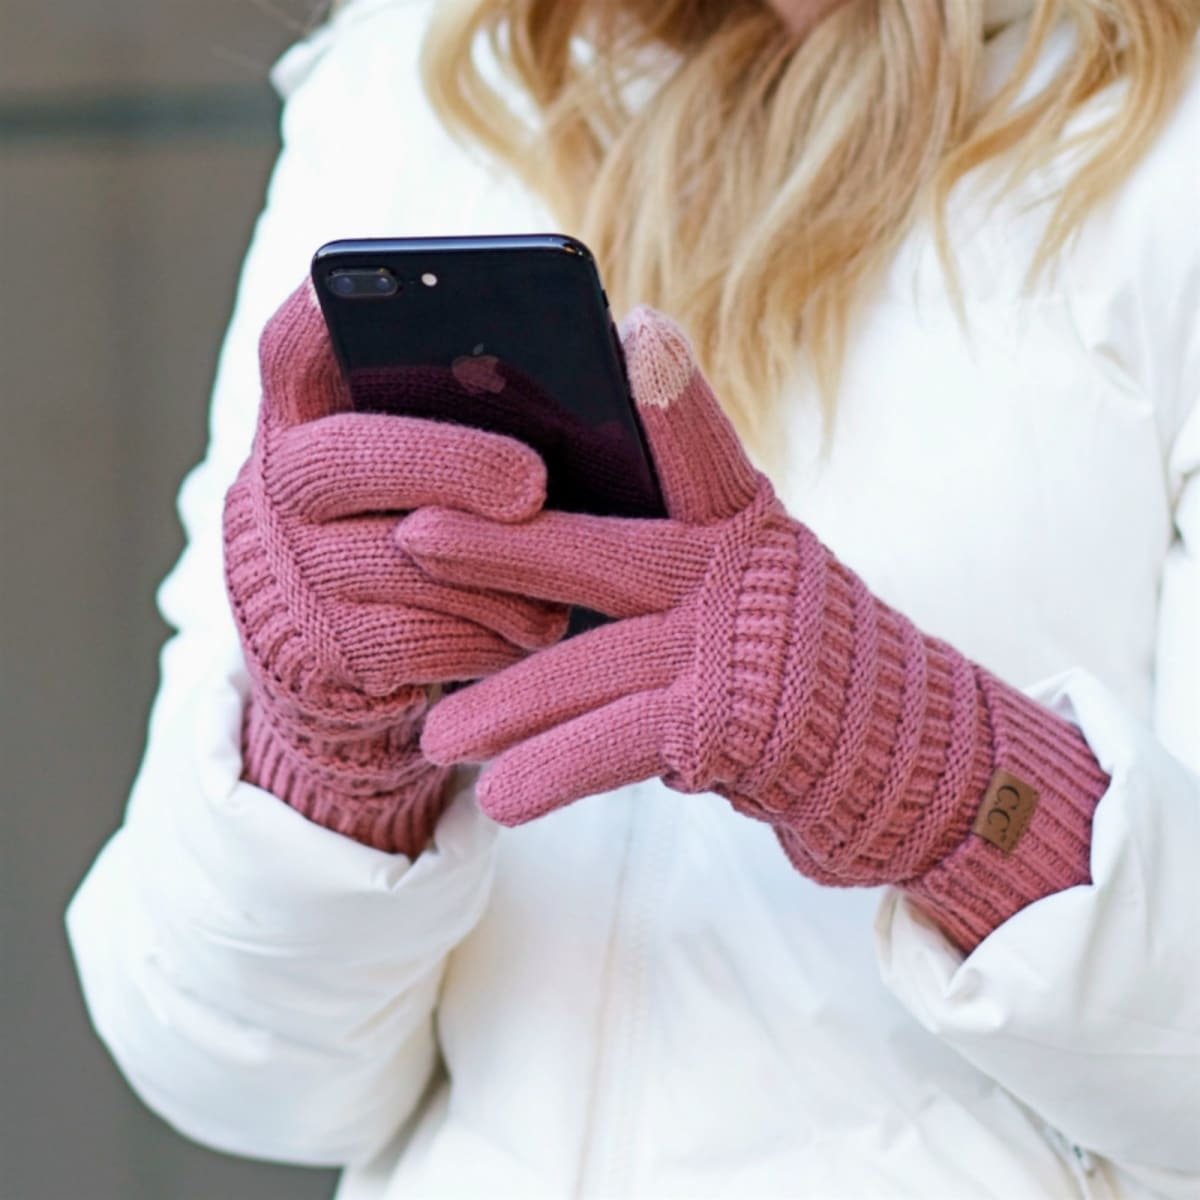 Popular CC Touchscreen Gloves | 2 Sizes